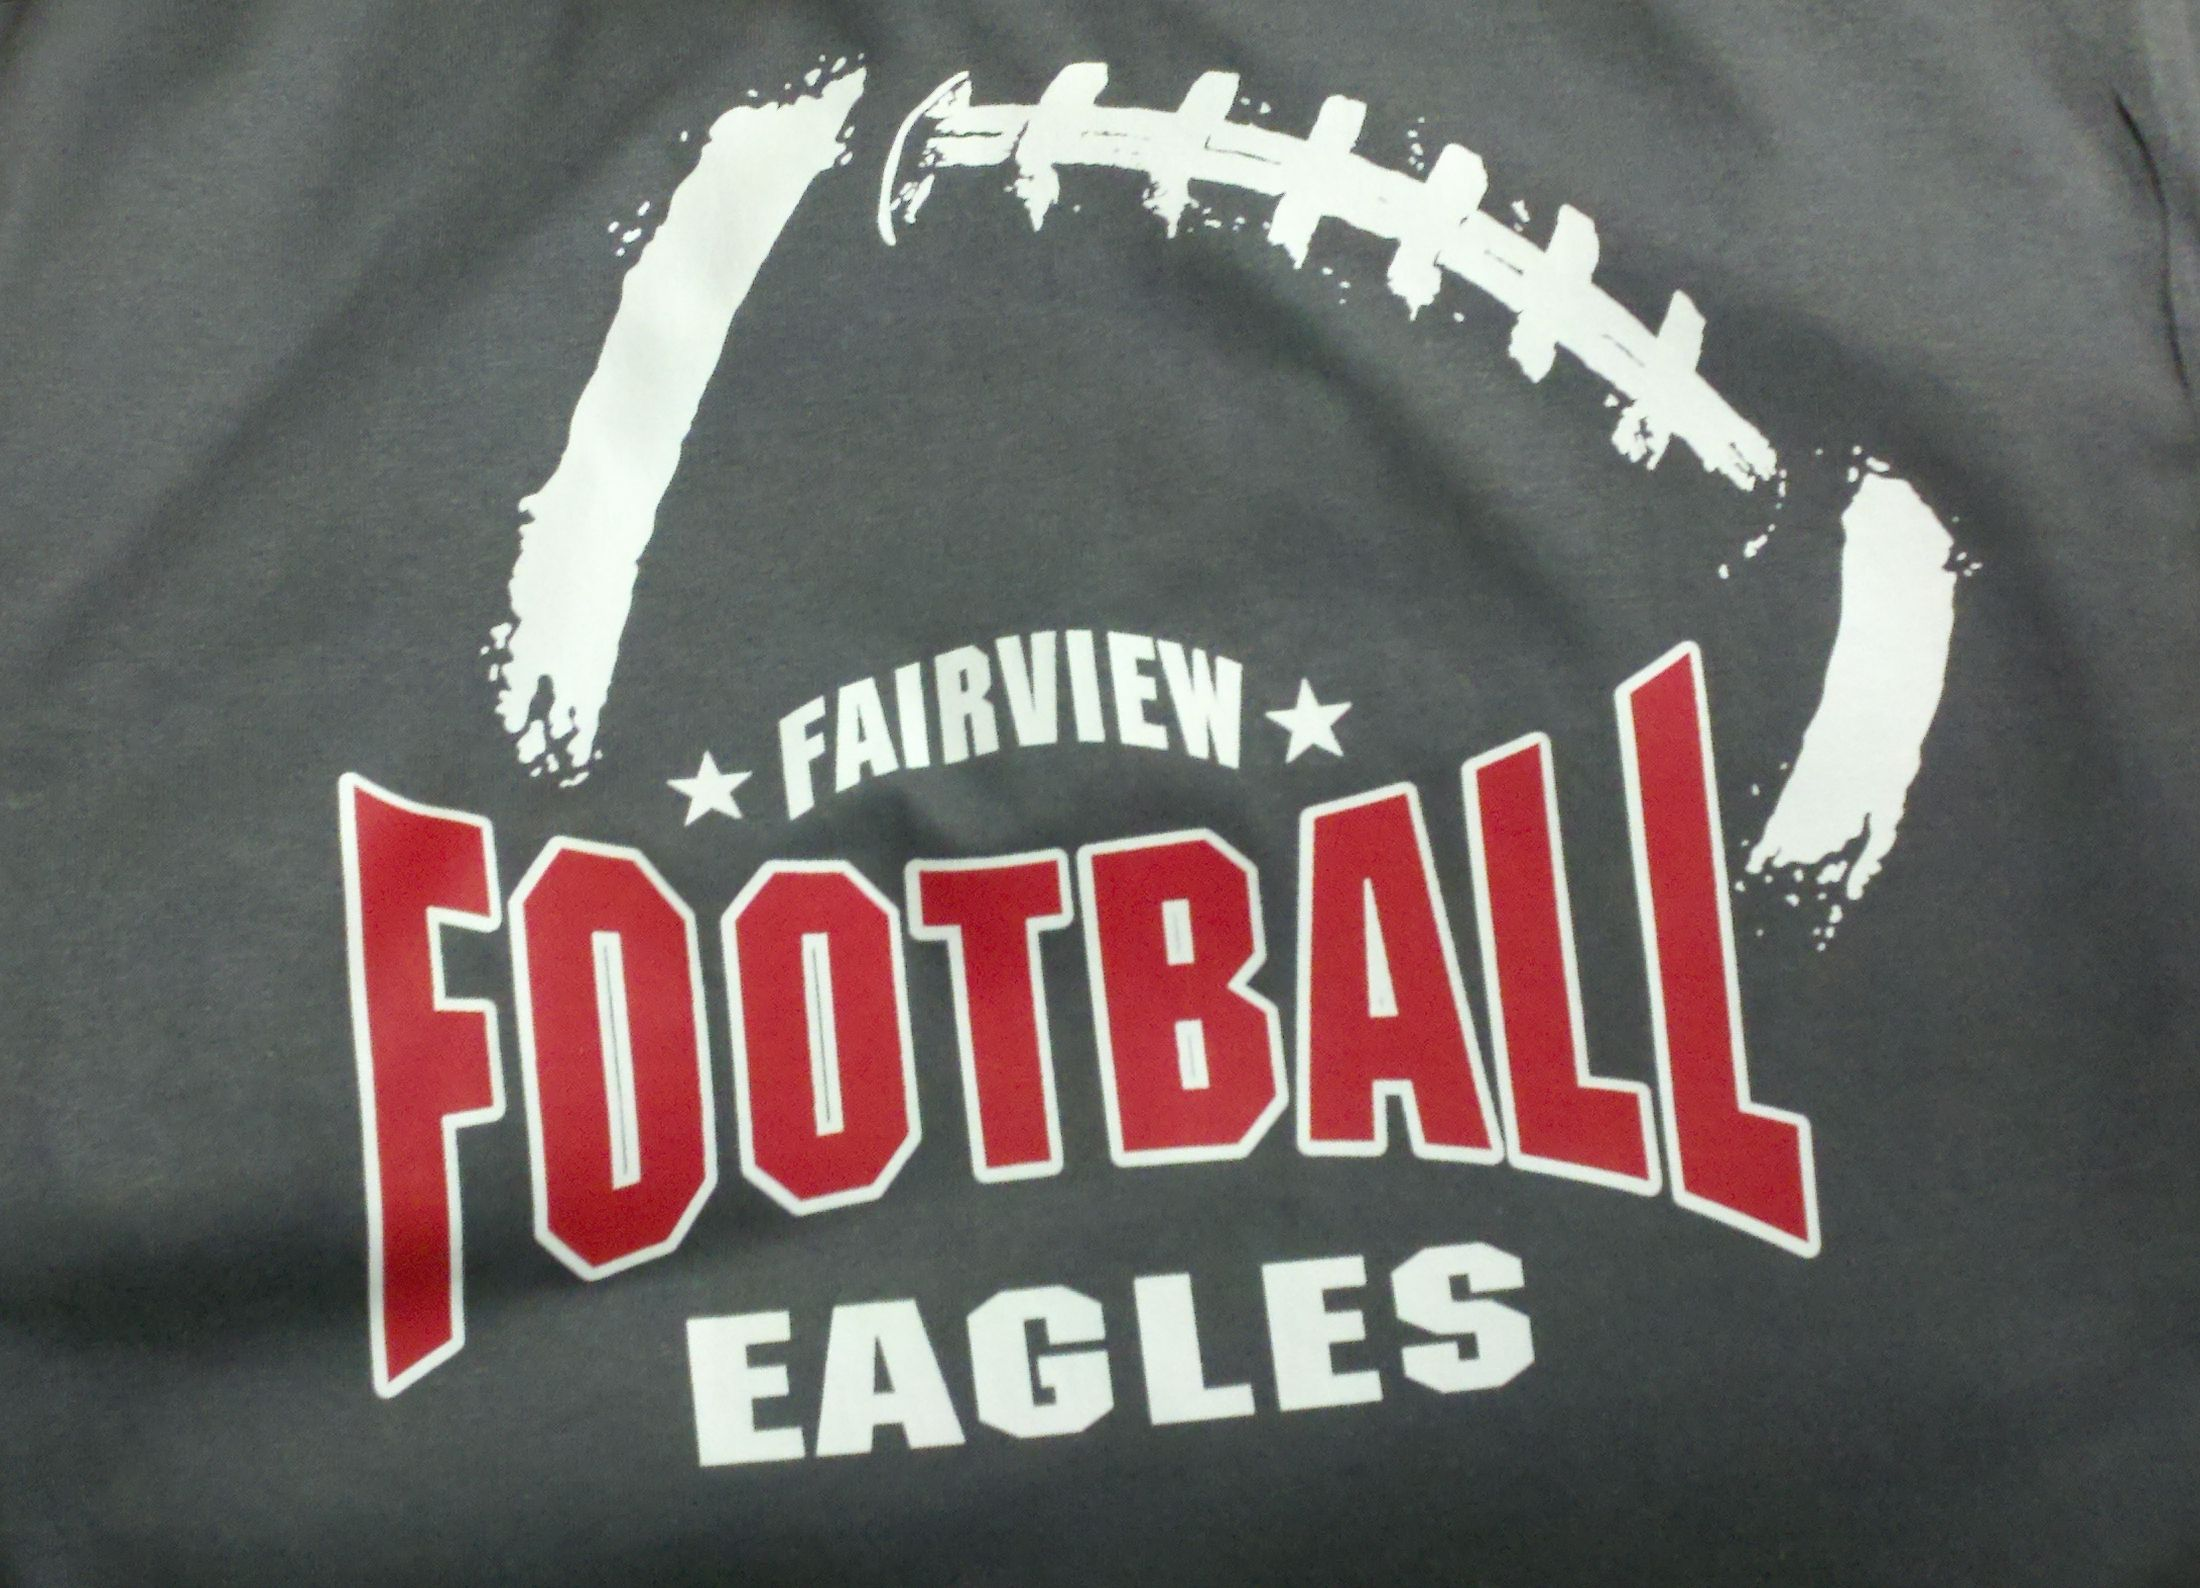 High School Football Shirt Ideas Fairview Apparel